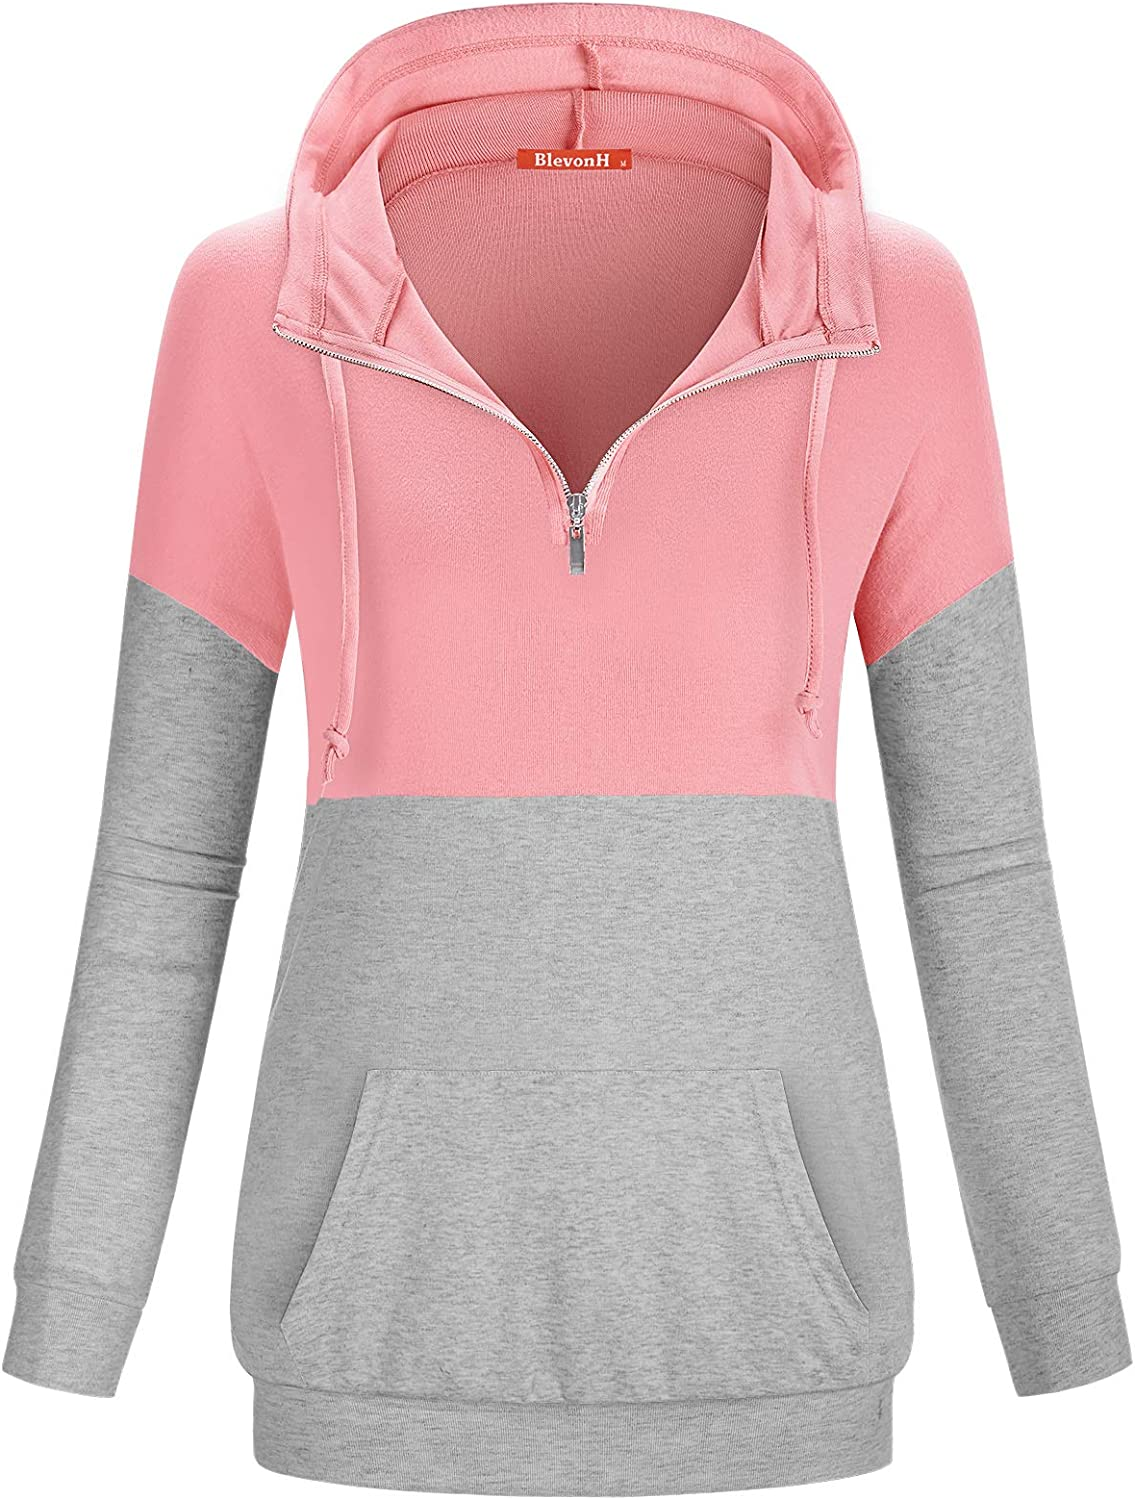 Blevonh Women 1//4 Zipper Hoodies Color Block Print Pocket Pullover Sweatshirt